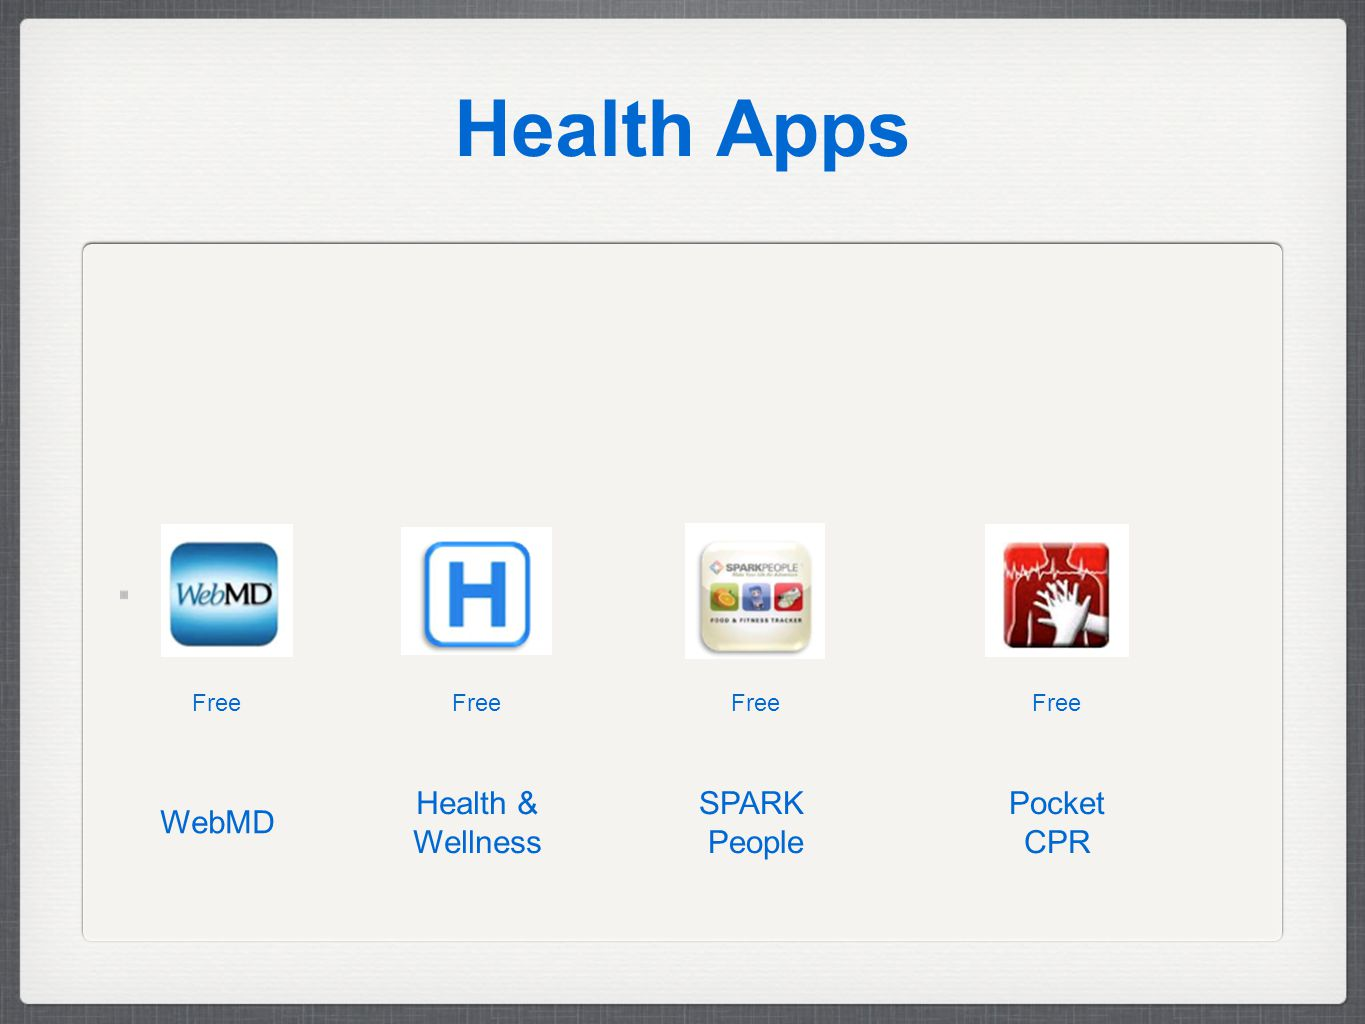 Health Apps Free Pocket CPR SPARK People Health & Wellness WebMD